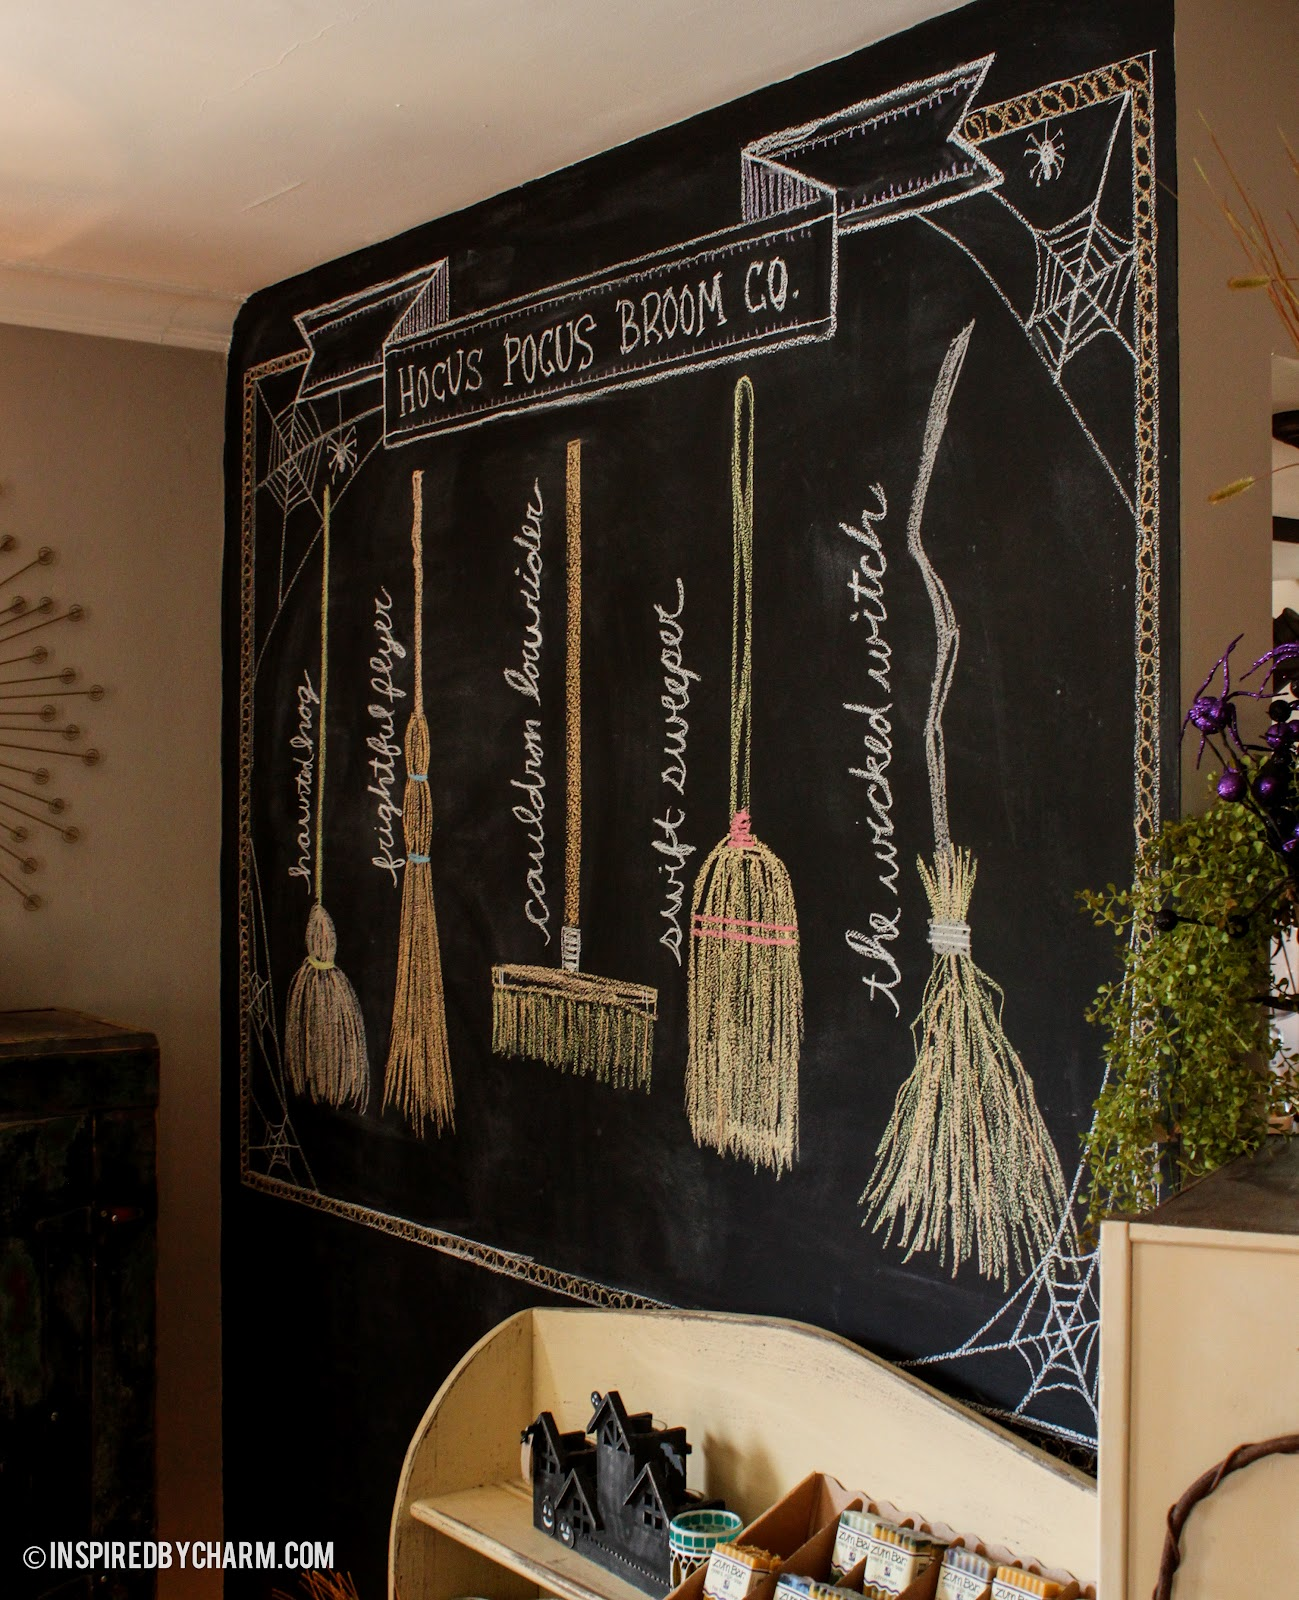 Hocus pocus broom co for Witches kitchen ideas